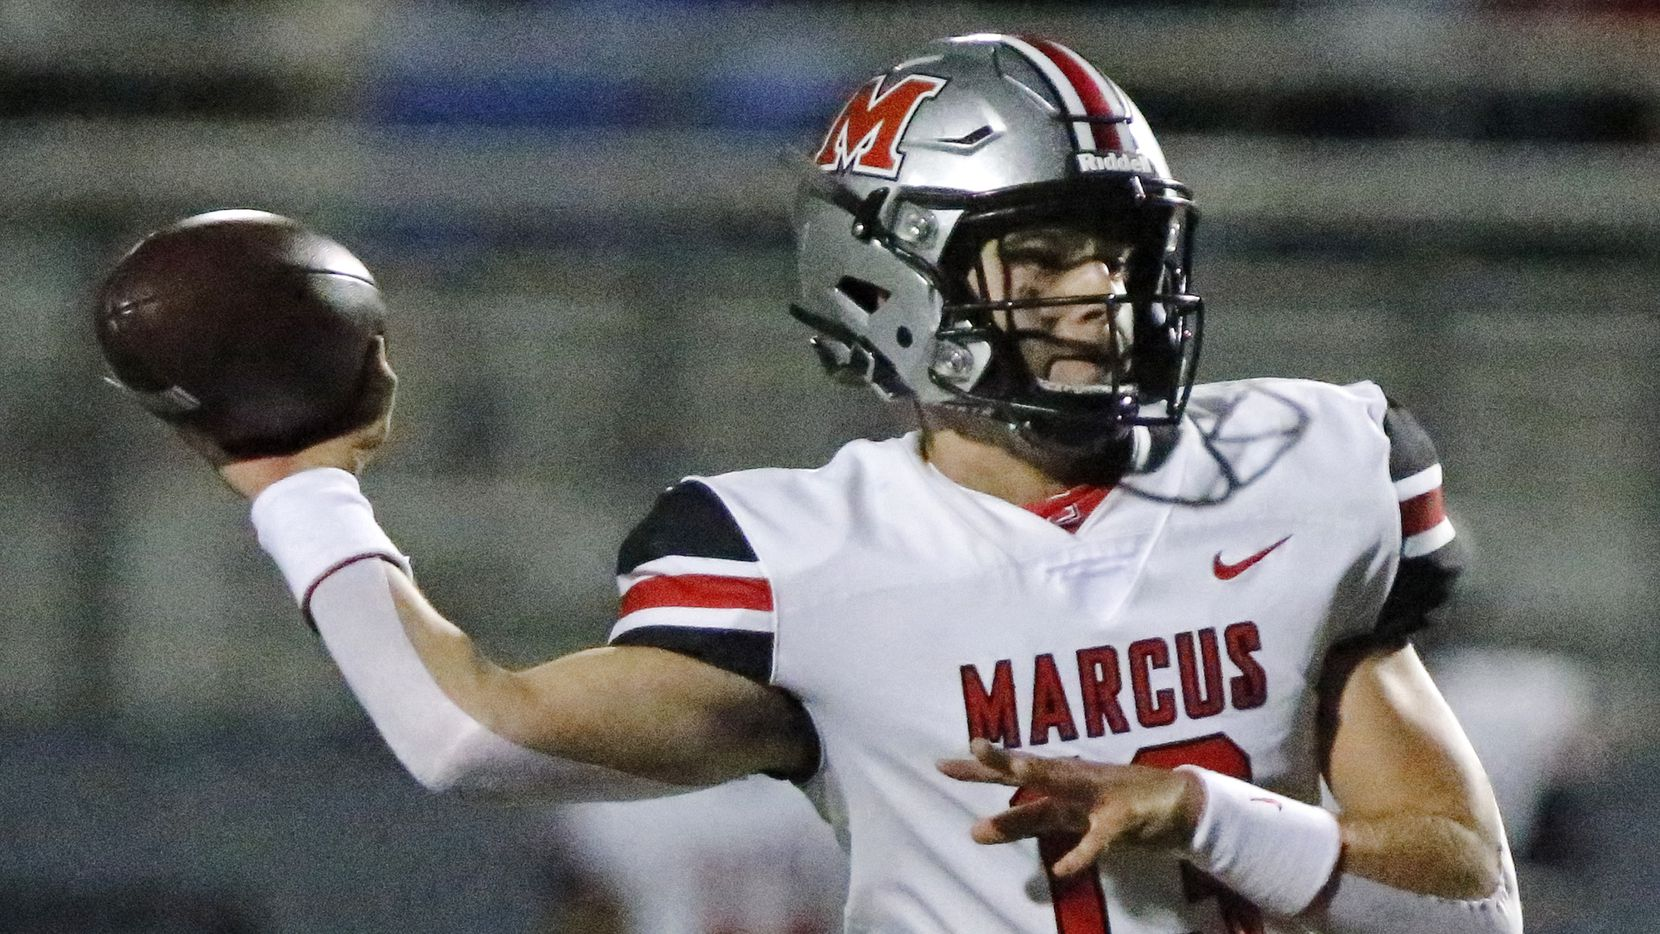 Flower Mound Marcus quarterback Garrett Nussmeier (13) throws a pass during the first half as Flower Mound High School hosted Flower Mound Marcus High School at Neal E. Wilson Jaguar Stadium on Friday night, October 23, 2020.